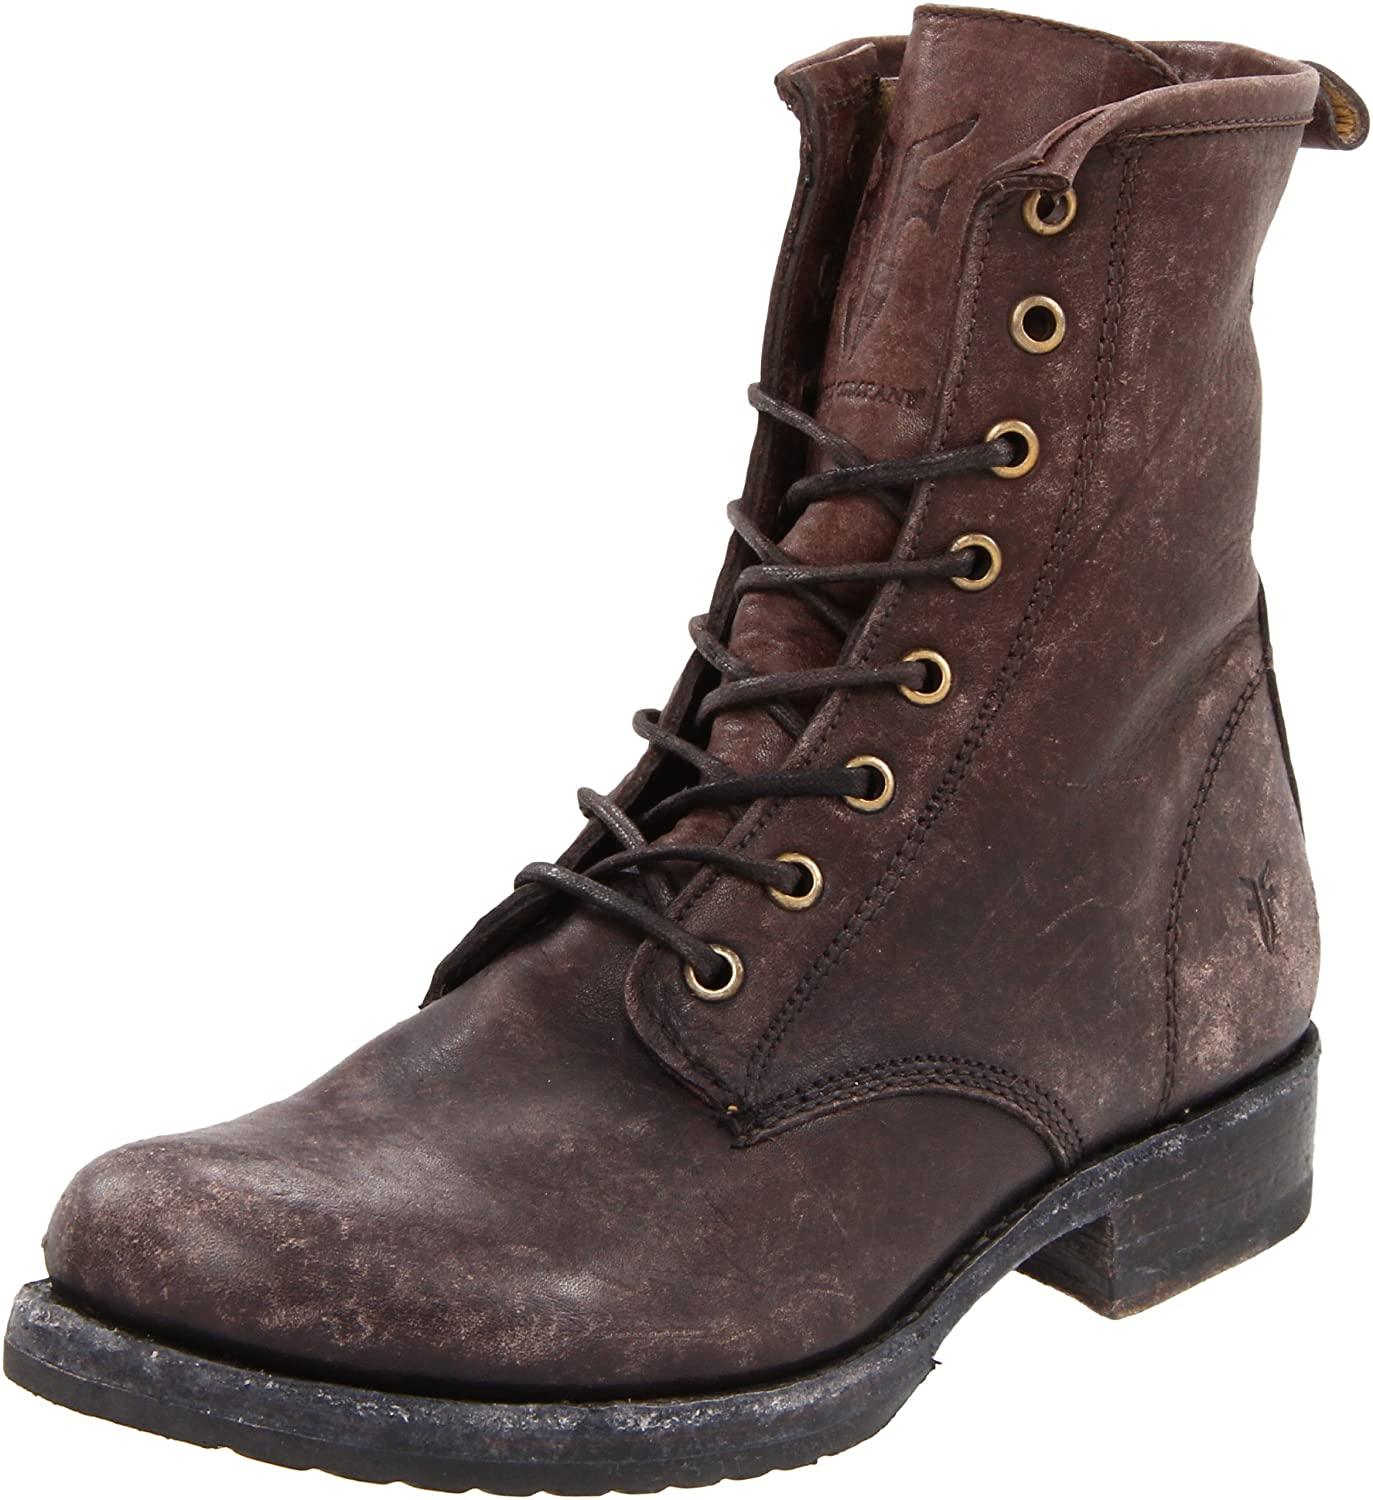 FRYE Women's Veronica Combat Boot B004OUVGNW 10 B(M) US|Dark Brown Stone Washed-76272